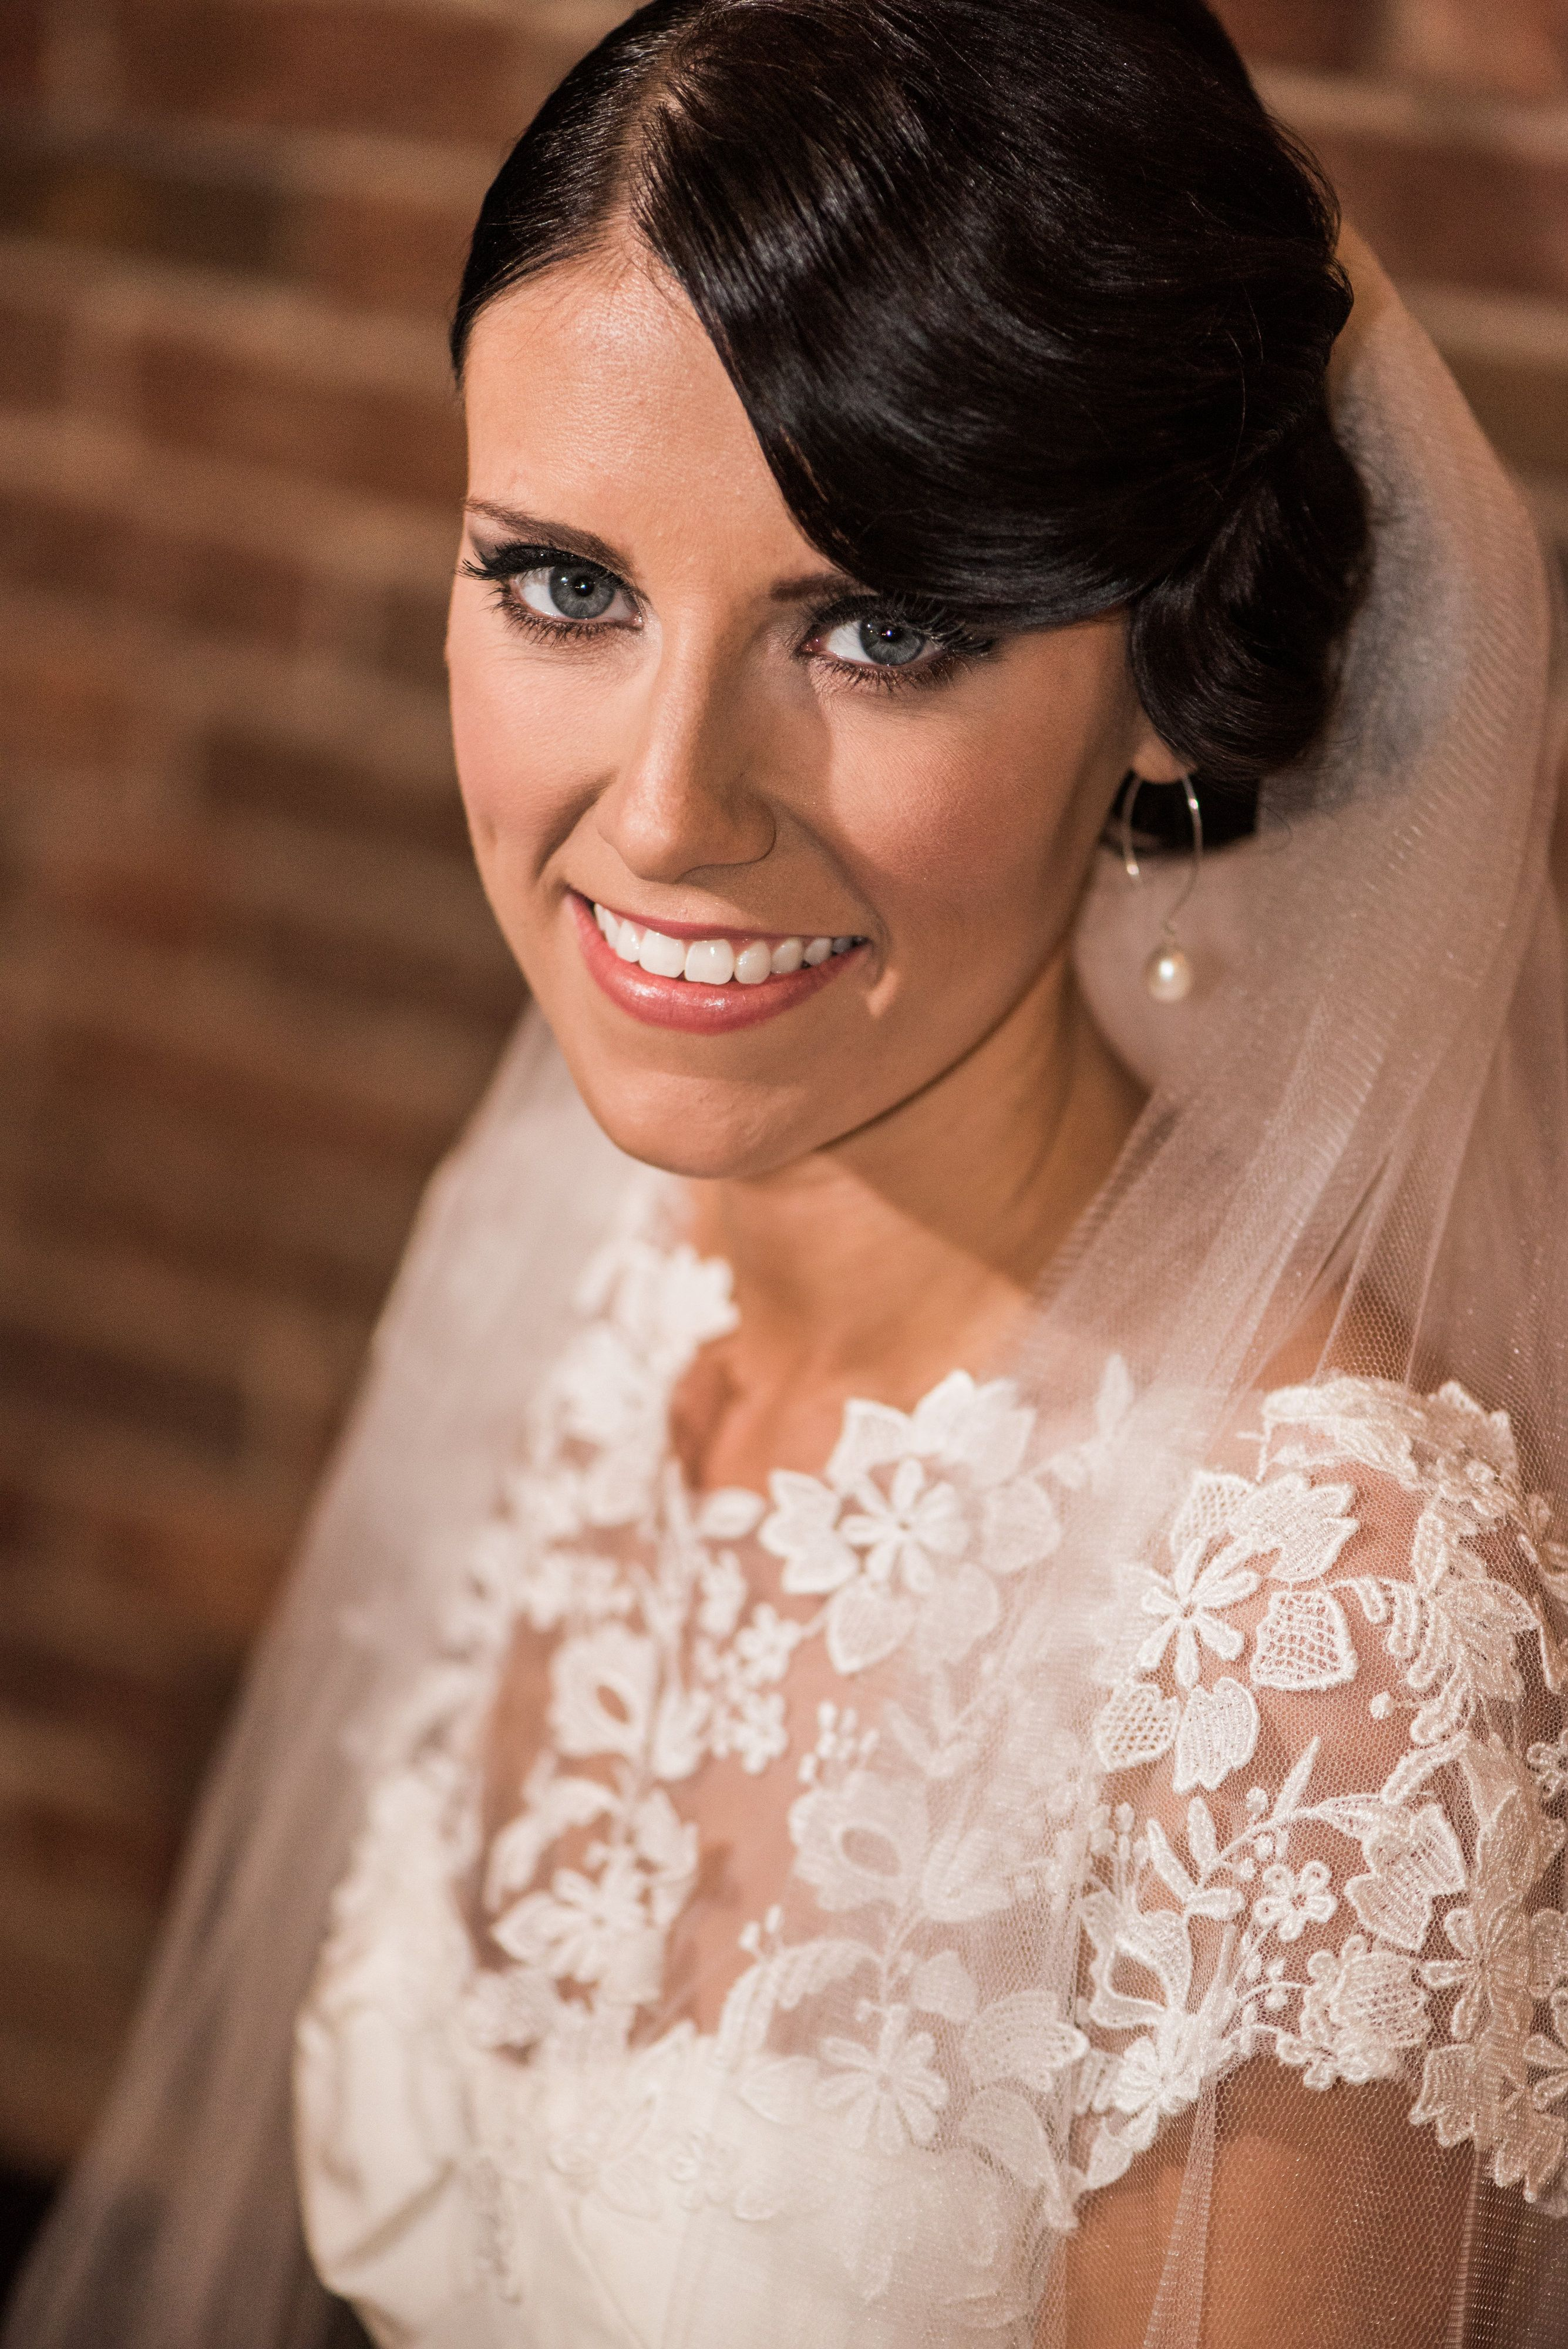 makeup by jacquelyn cuturic artistry | jacquelyn cuturic artistry